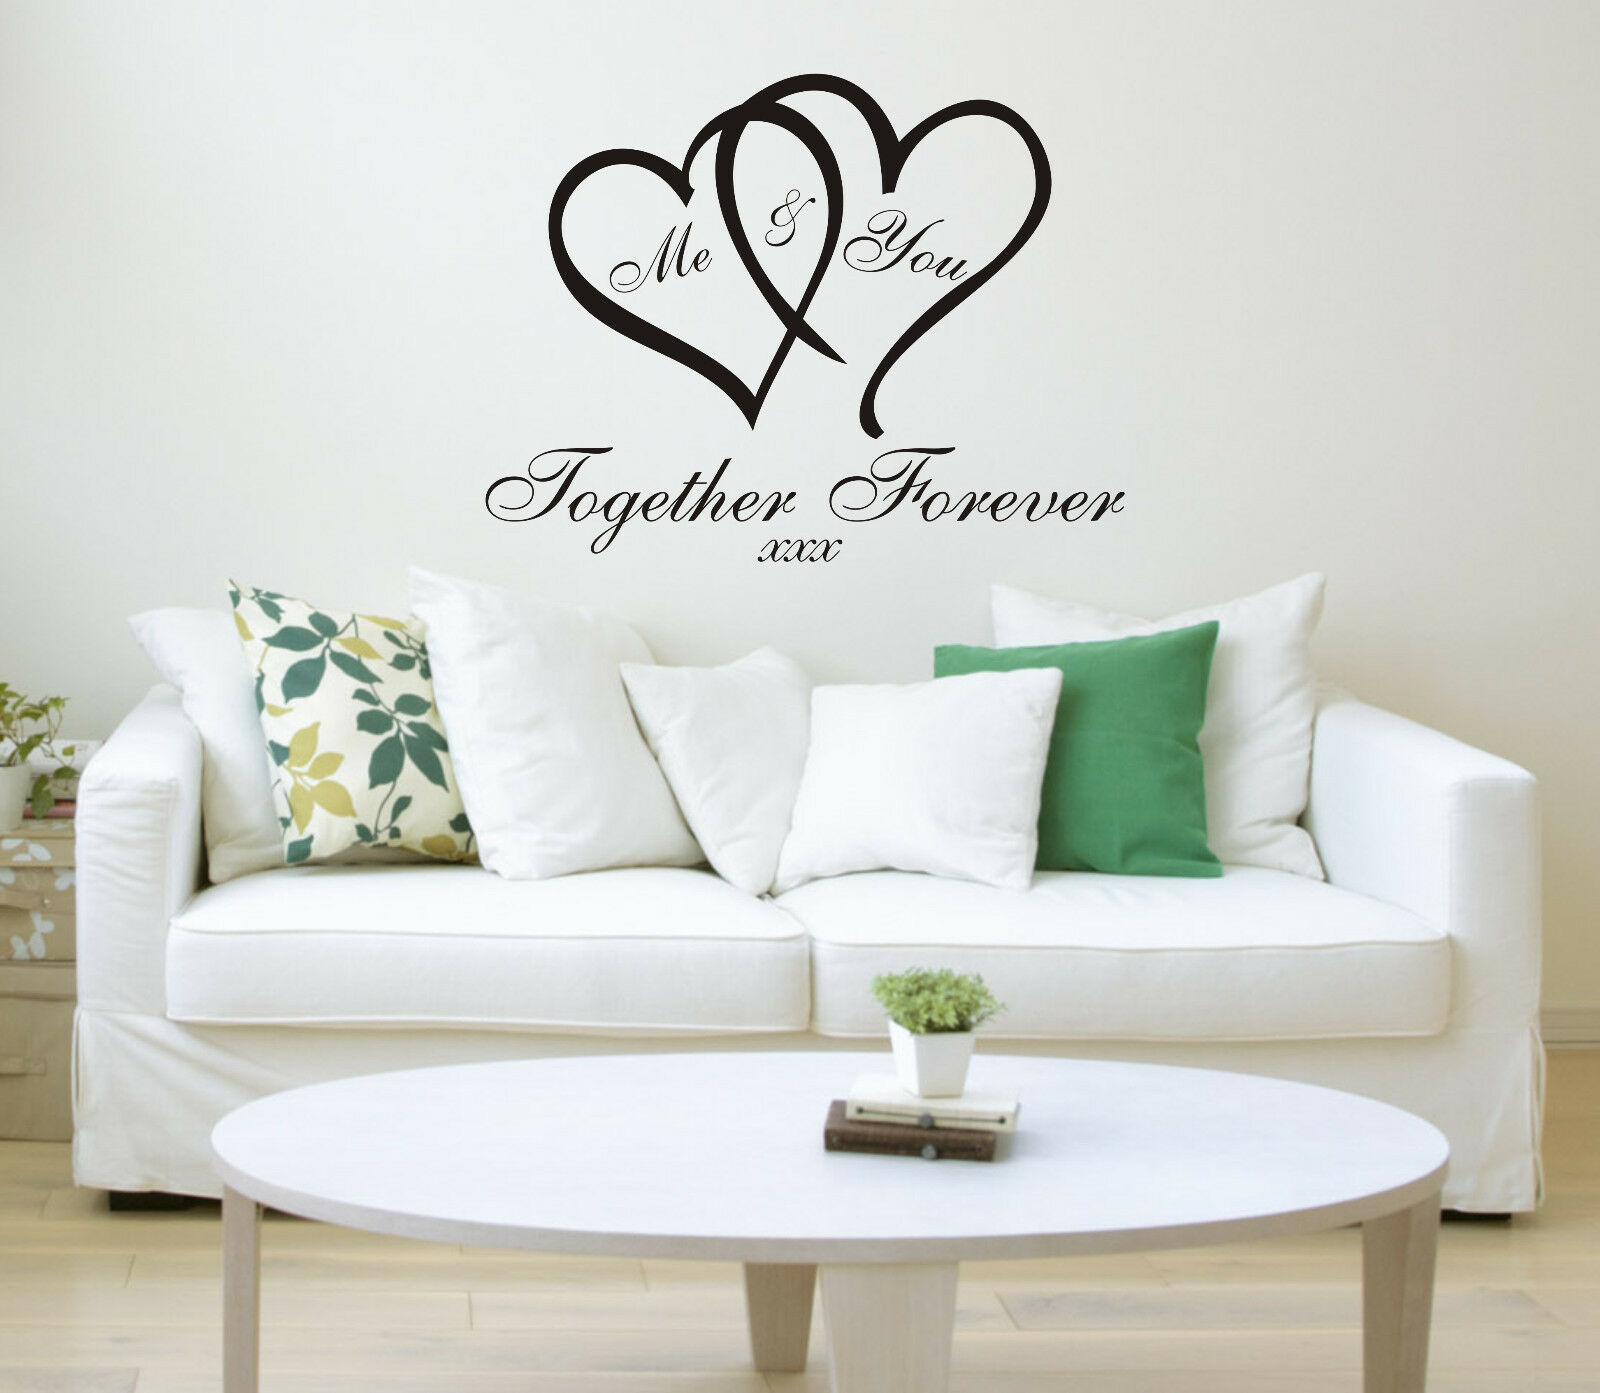 Home Decoration - Me & You Love Heart Quote Wall Sticker Art Home Decal wallart Family Bedroom